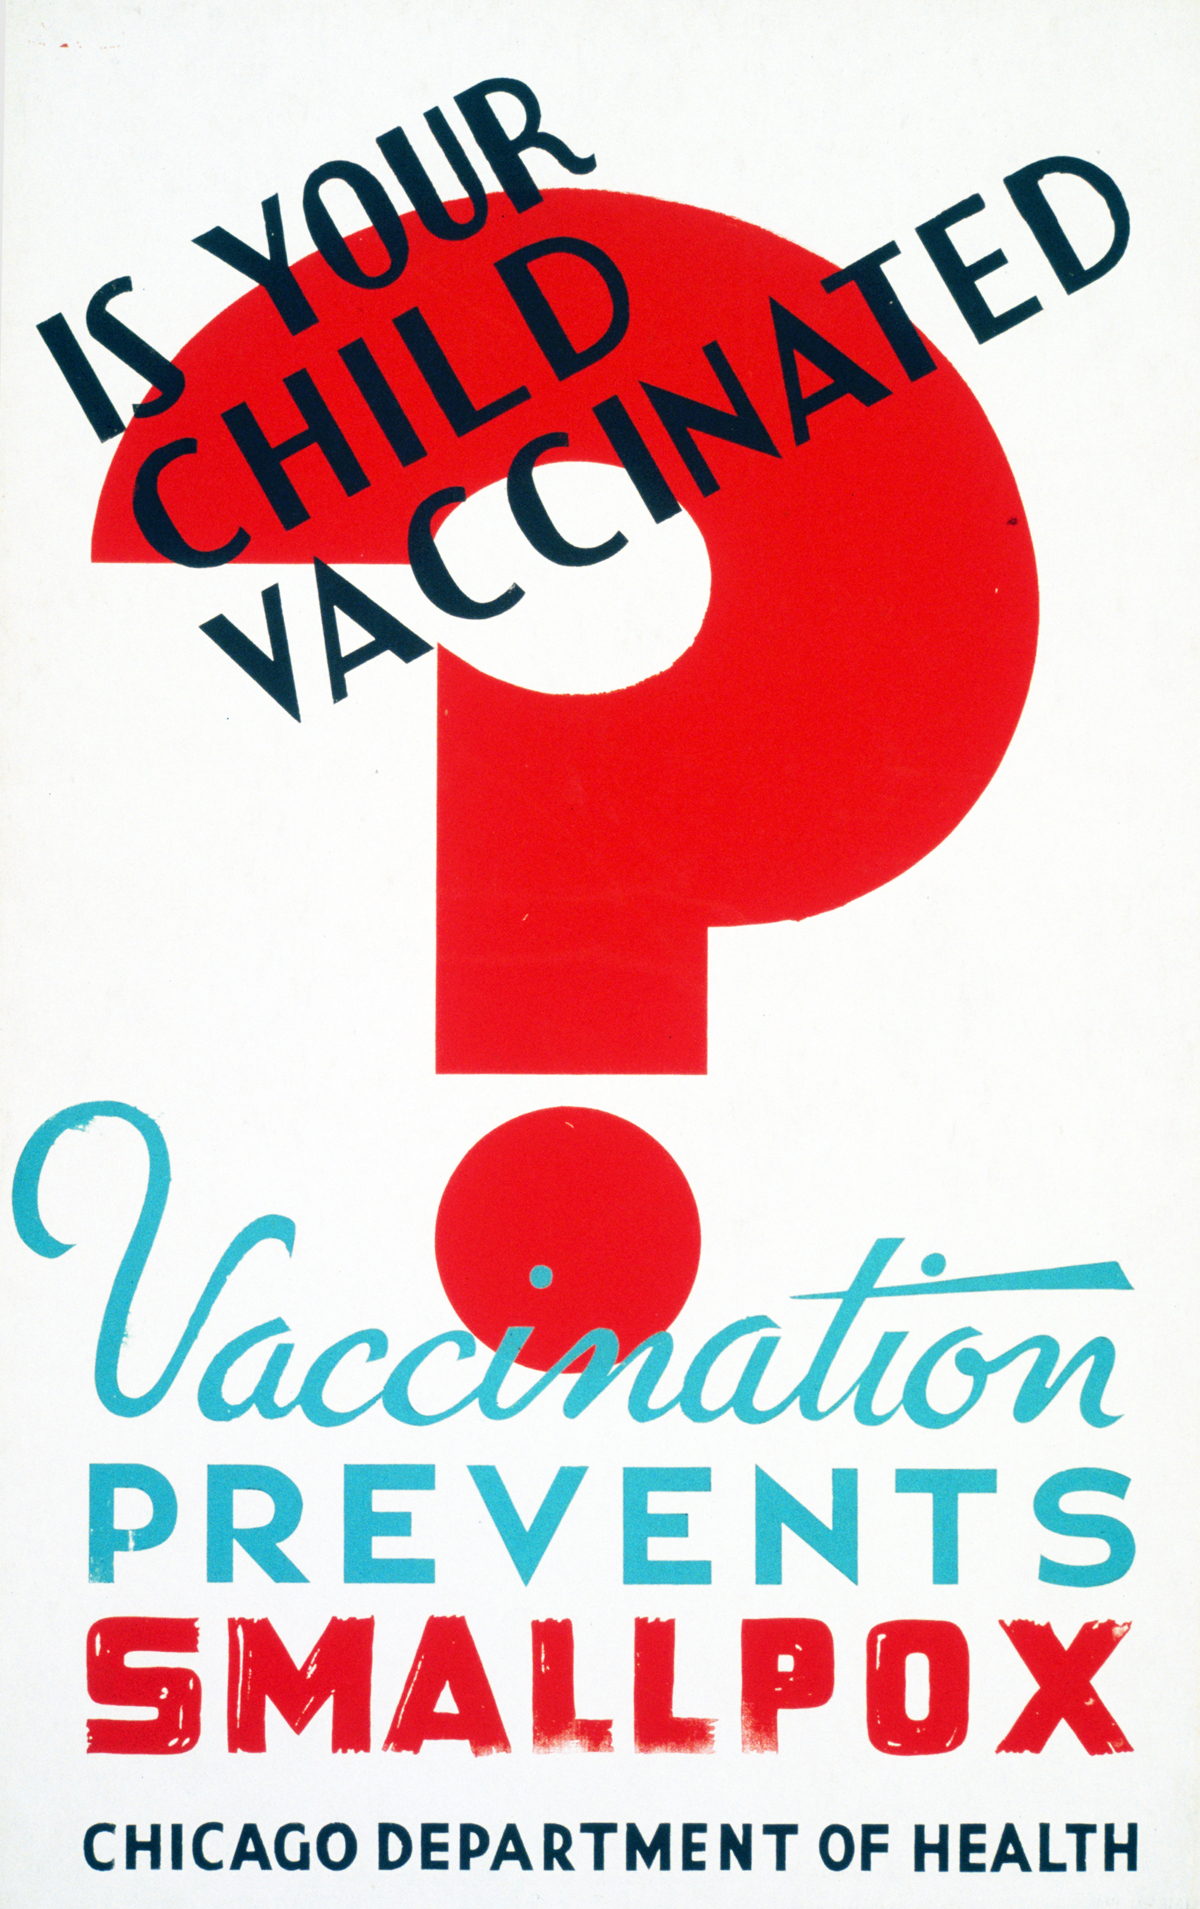 U.S. Health Department Campaign to encourage vaccination, Library of Congress